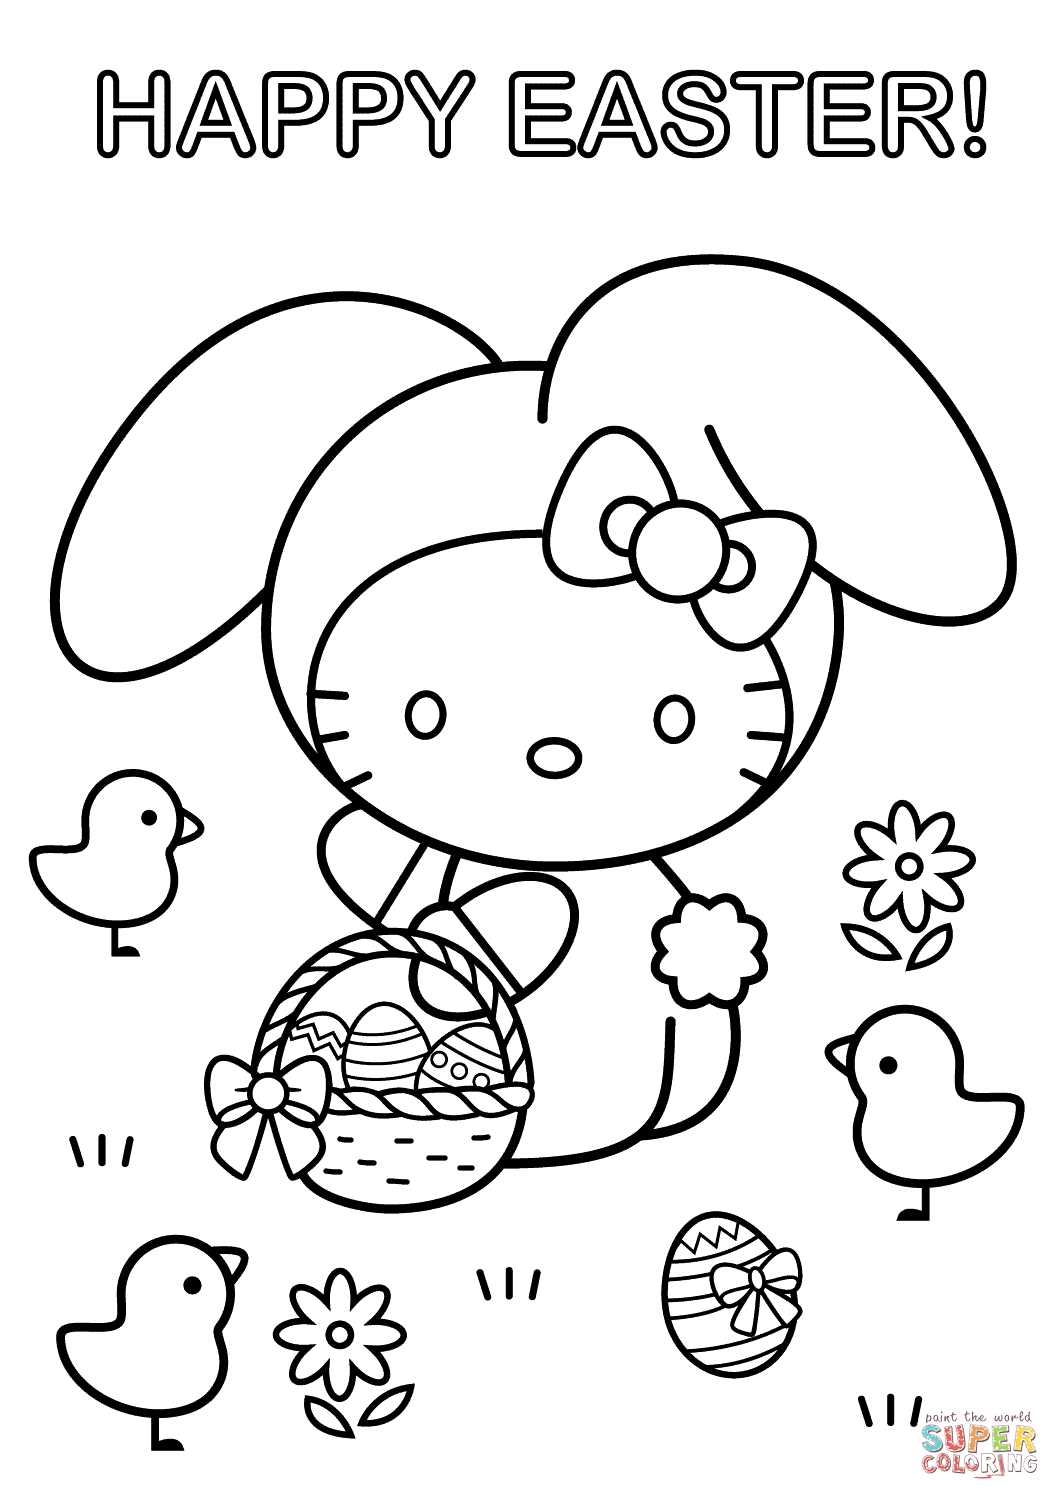 hello kitty easter coloring pages printable easter egg coloring pages for kids cool2bkids kitty coloring hello easter pages